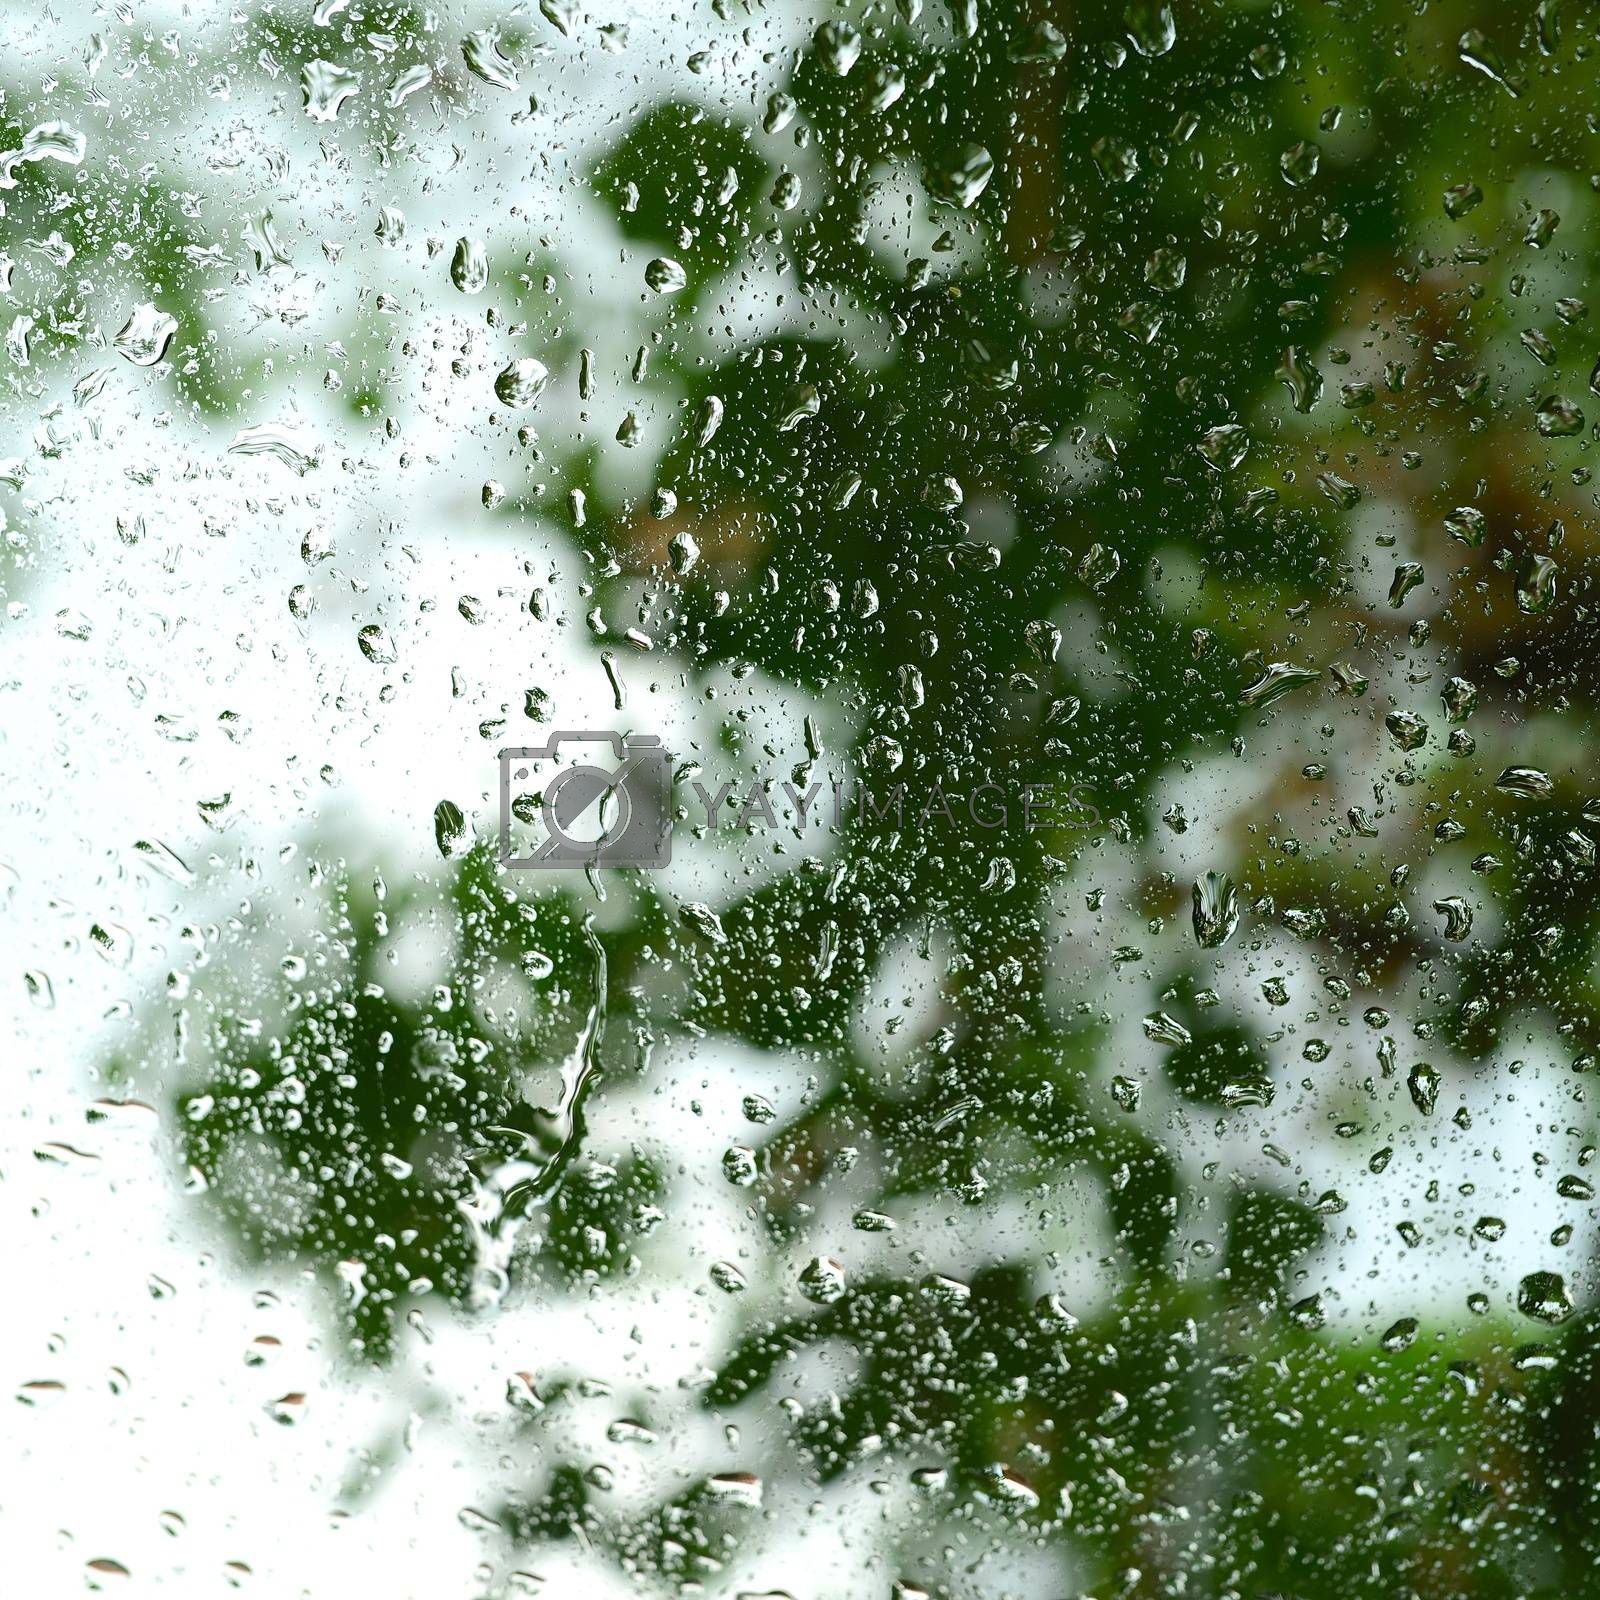 Royalty free image of rain on glass by antpkr